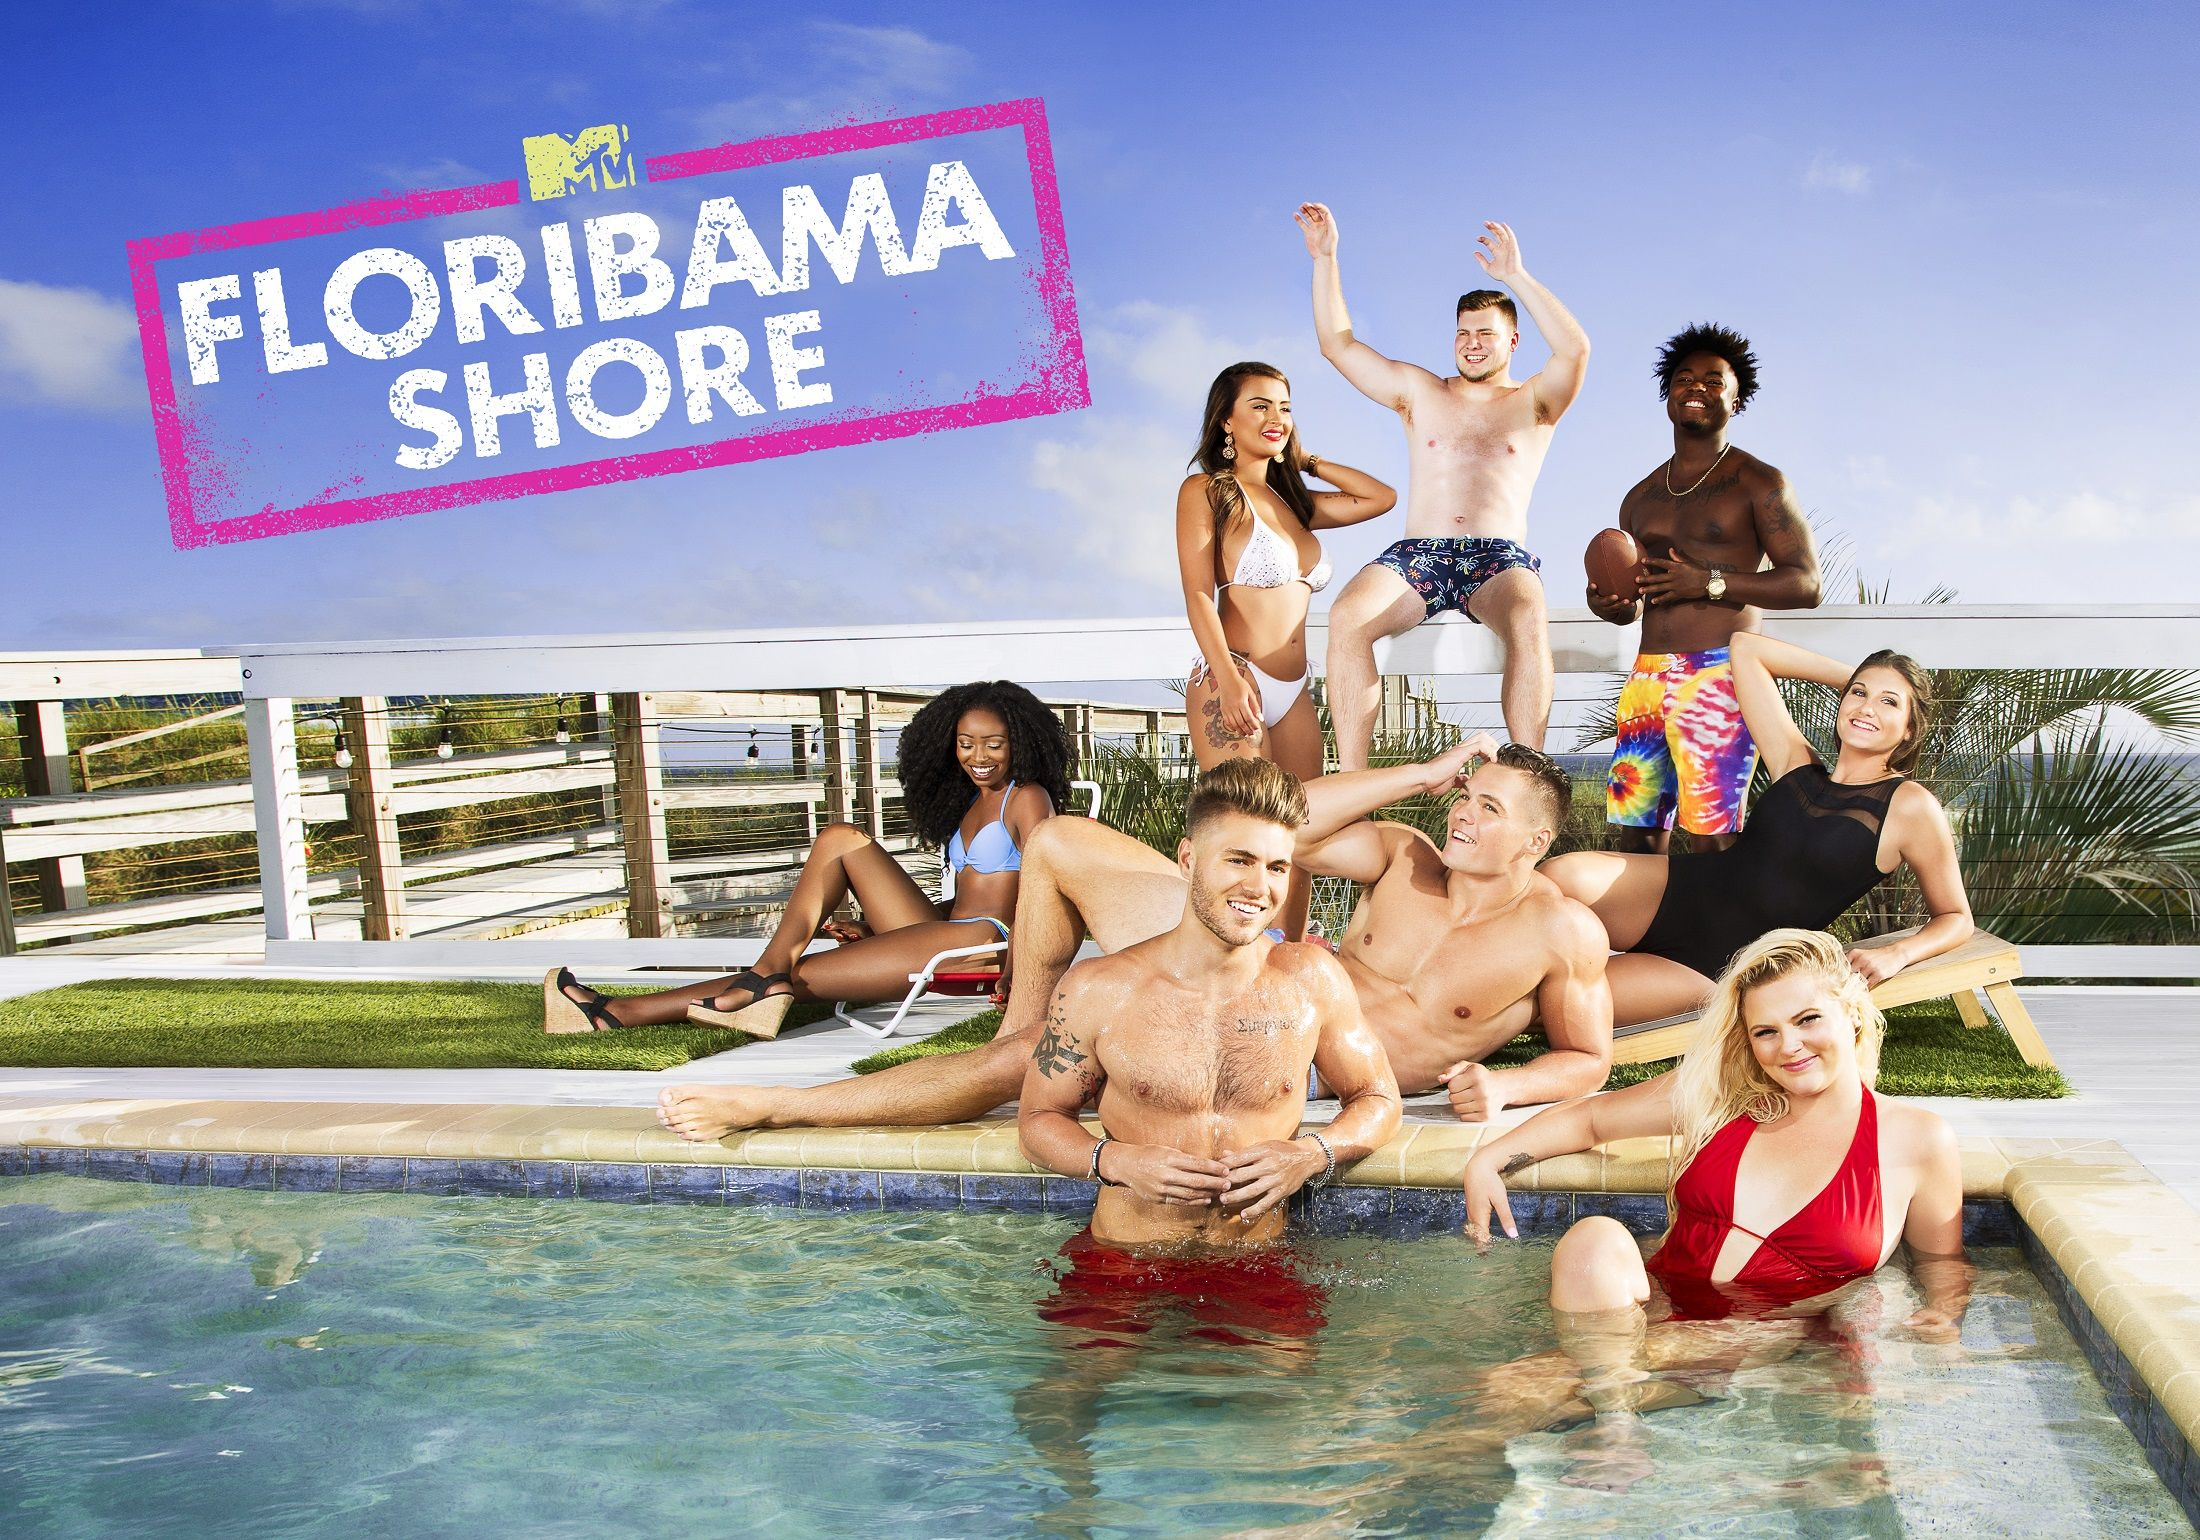 Will There Be A Season 3 Of Floribama Shore